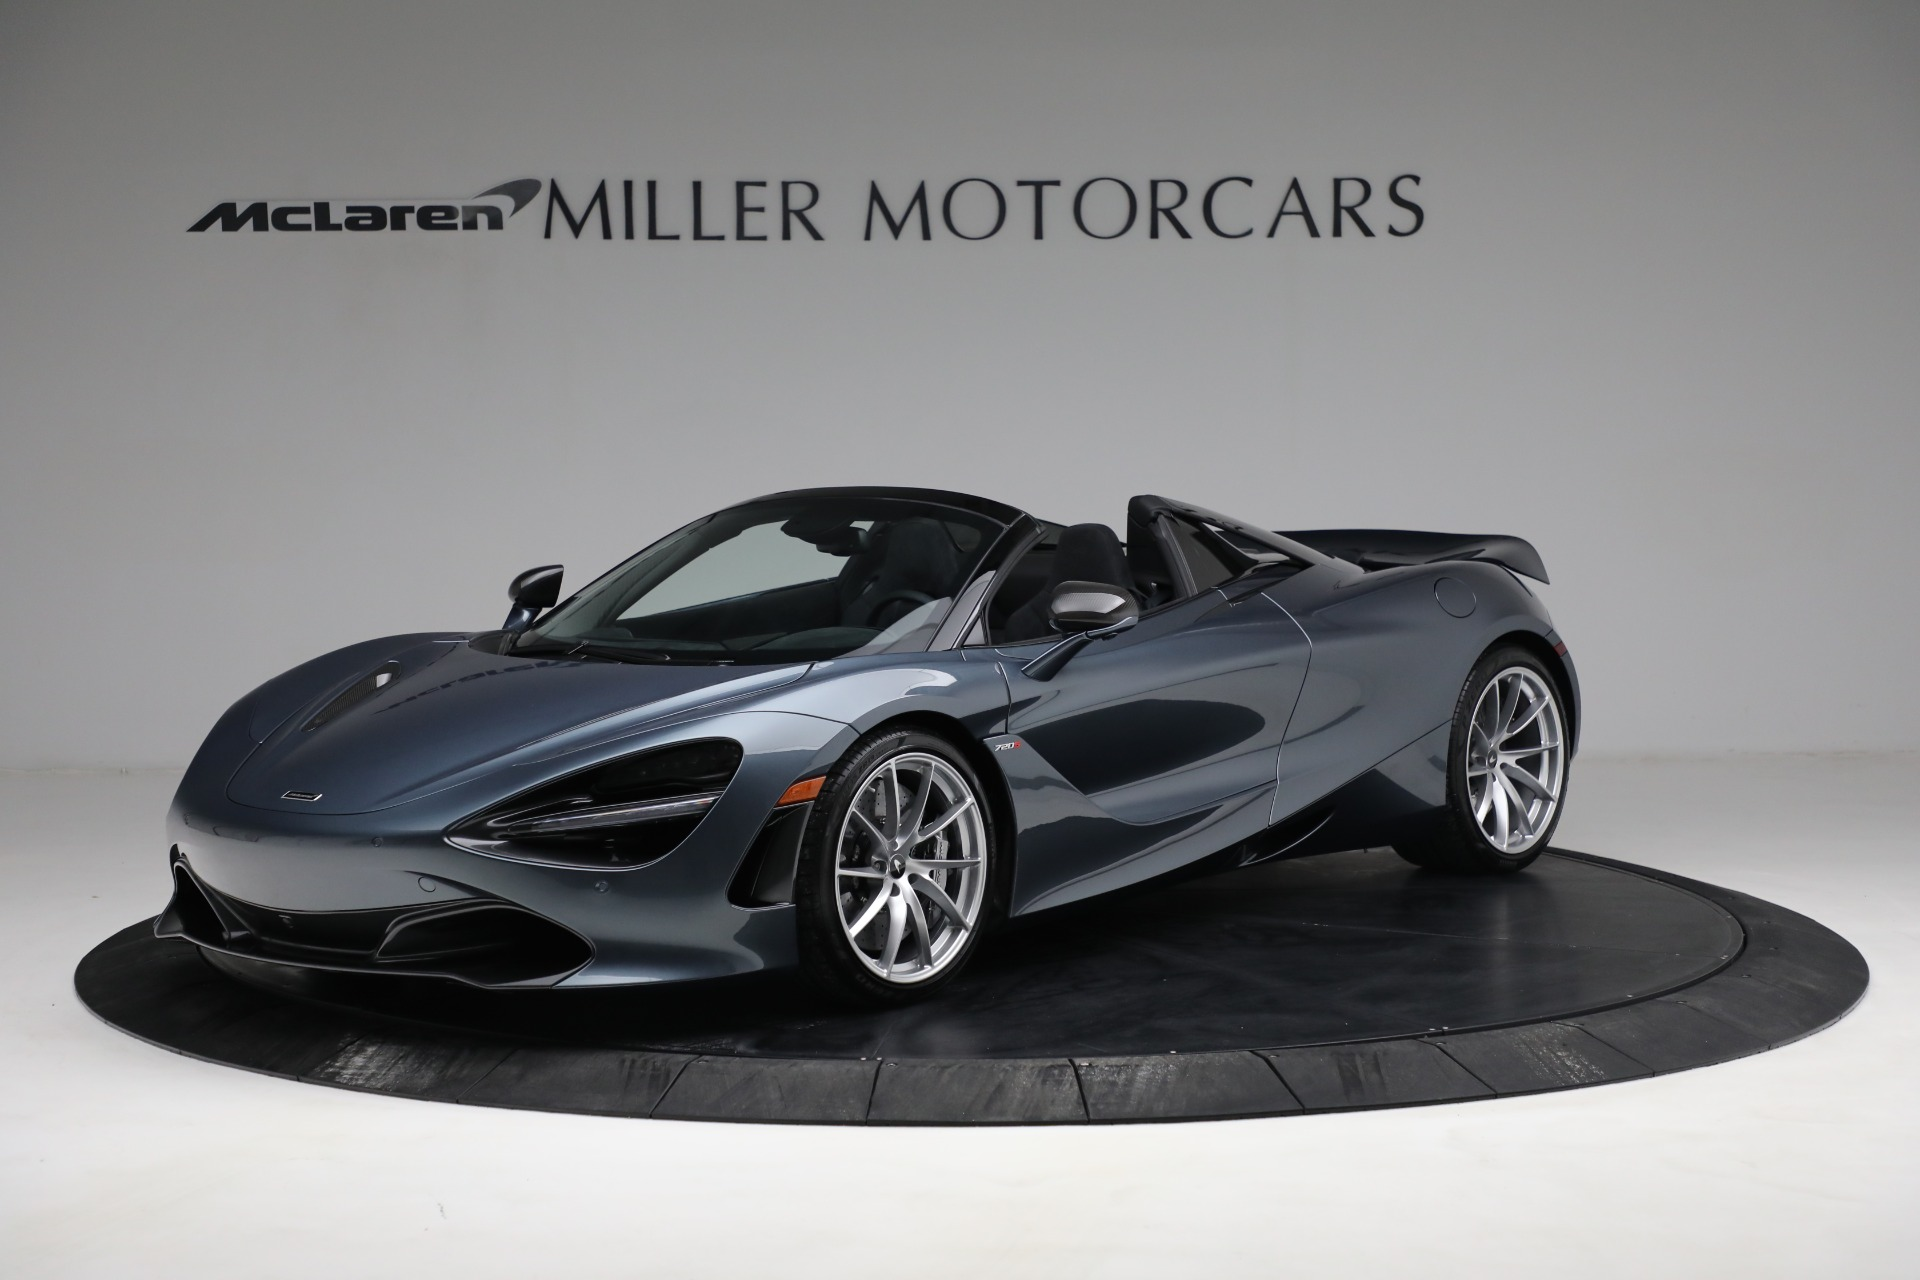 Used 2020 McLaren 720S Spider for sale $334,900 at Pagani of Greenwich in Greenwich CT 06830 1